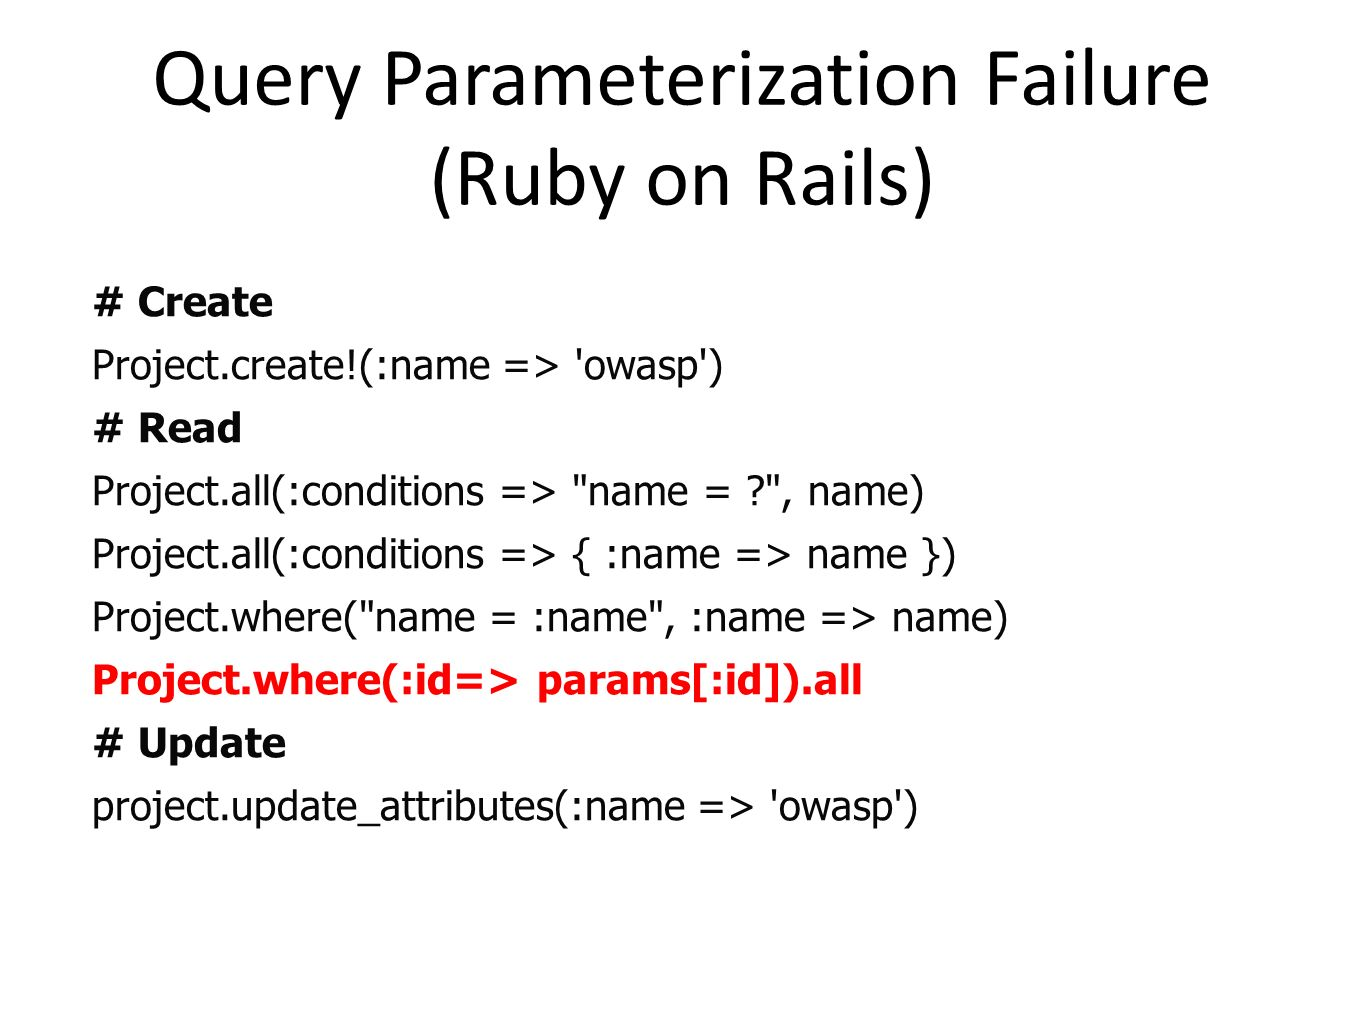 Query Parameterization Failure (Ruby on Rails)